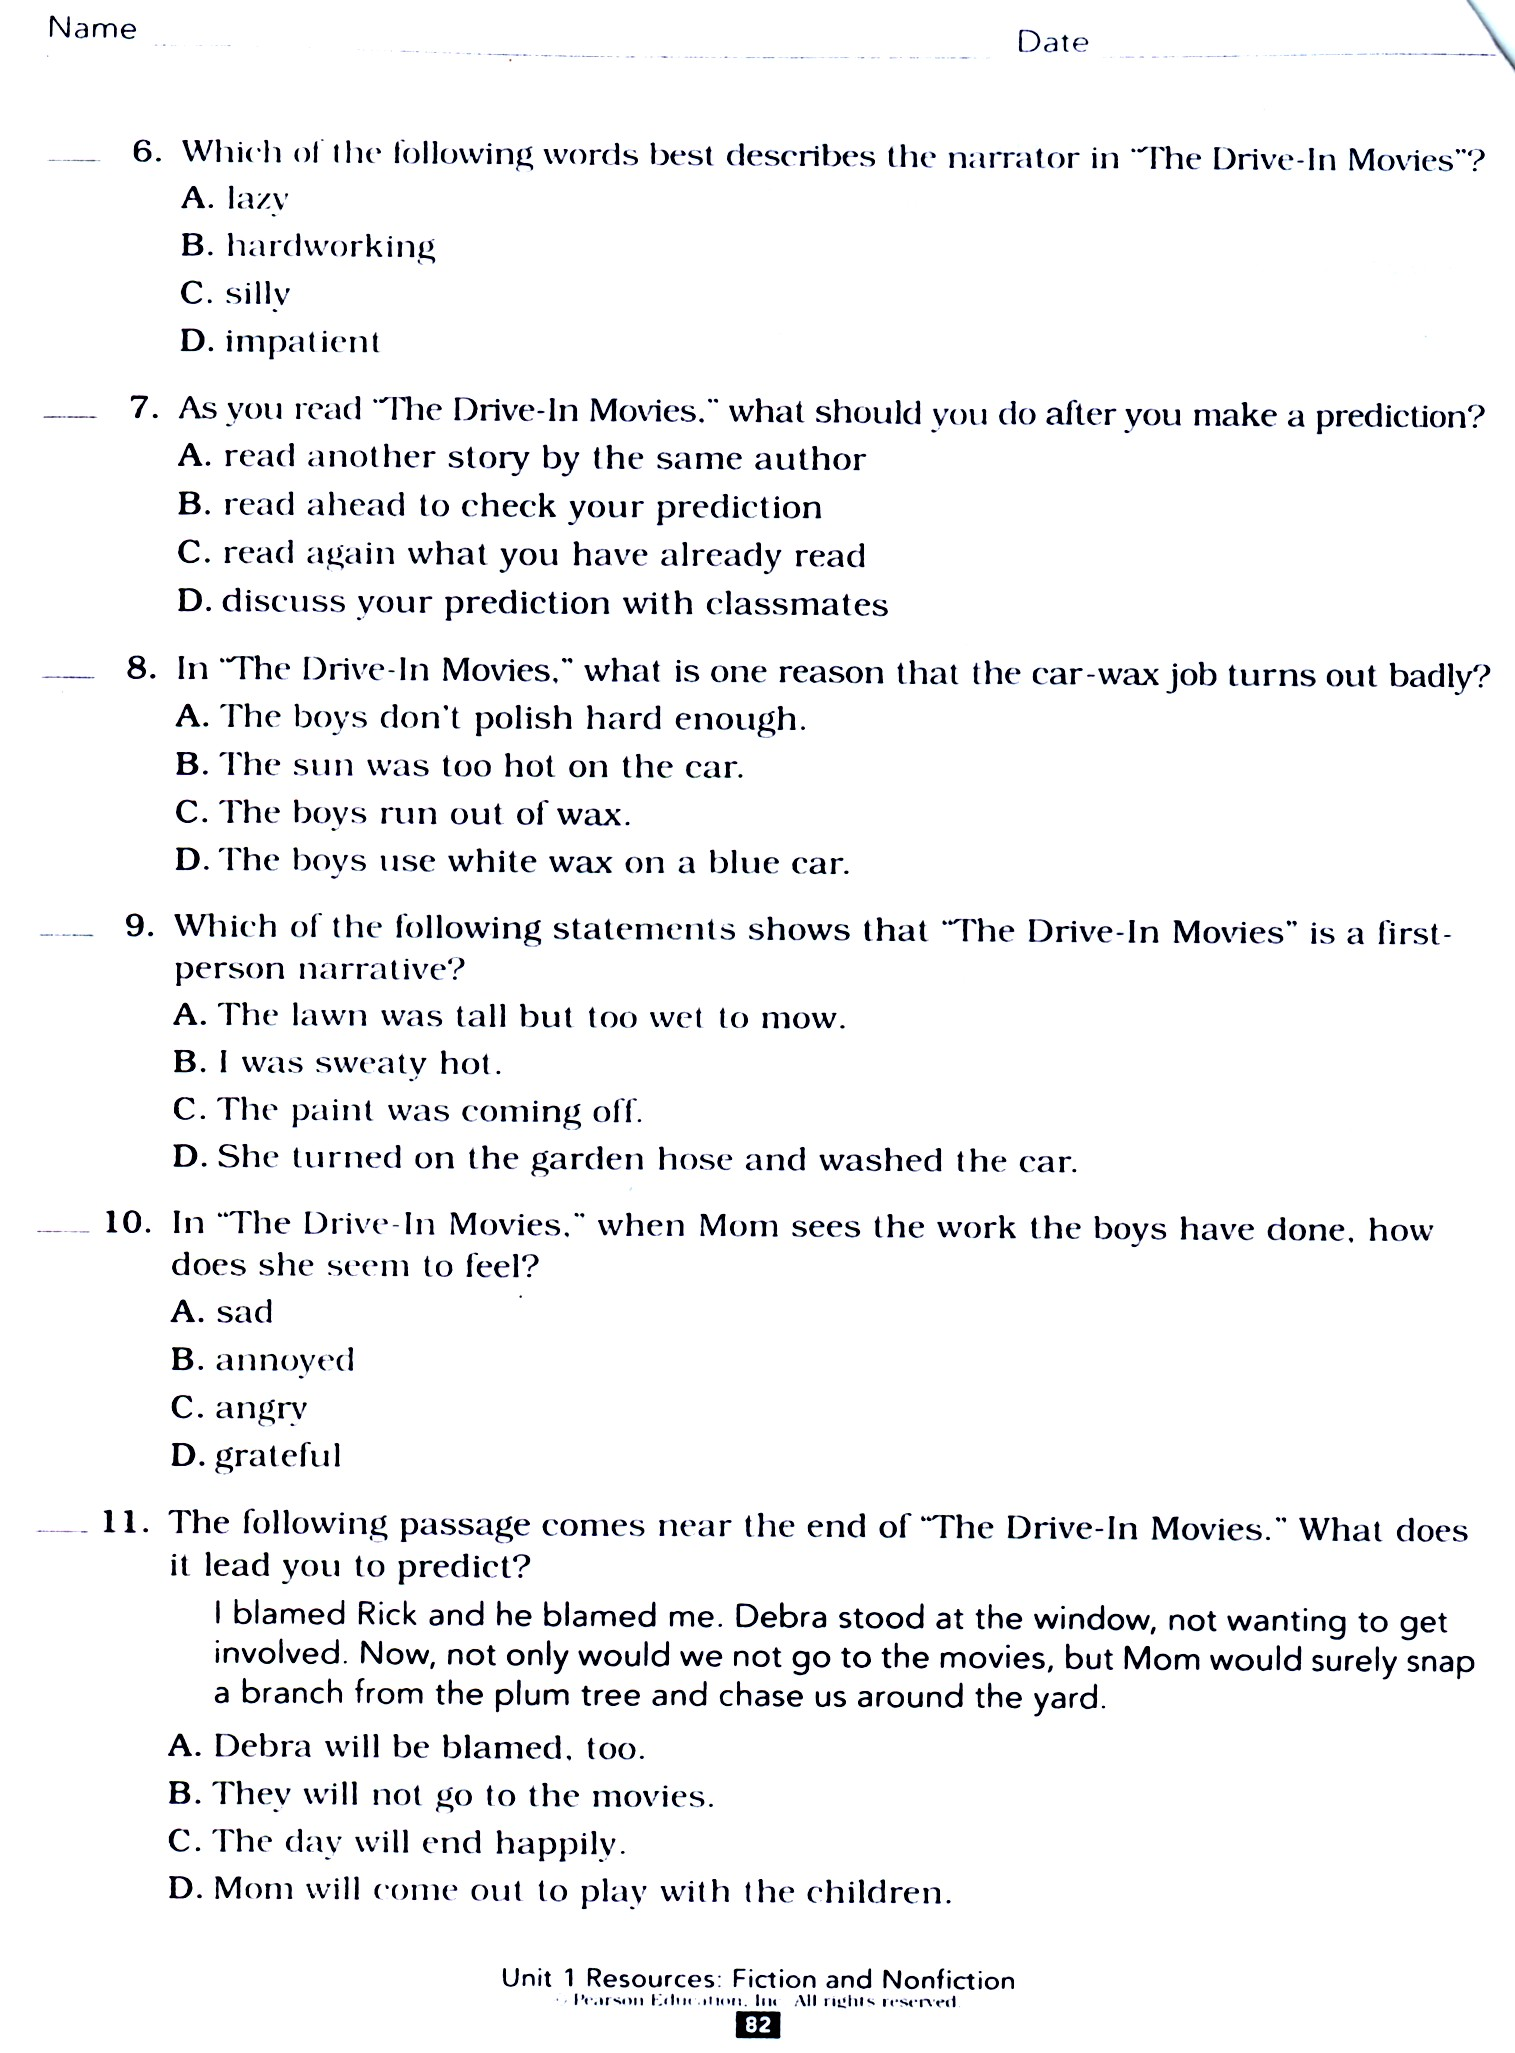 Code of Hammurabi Worksheet Images - Frompo